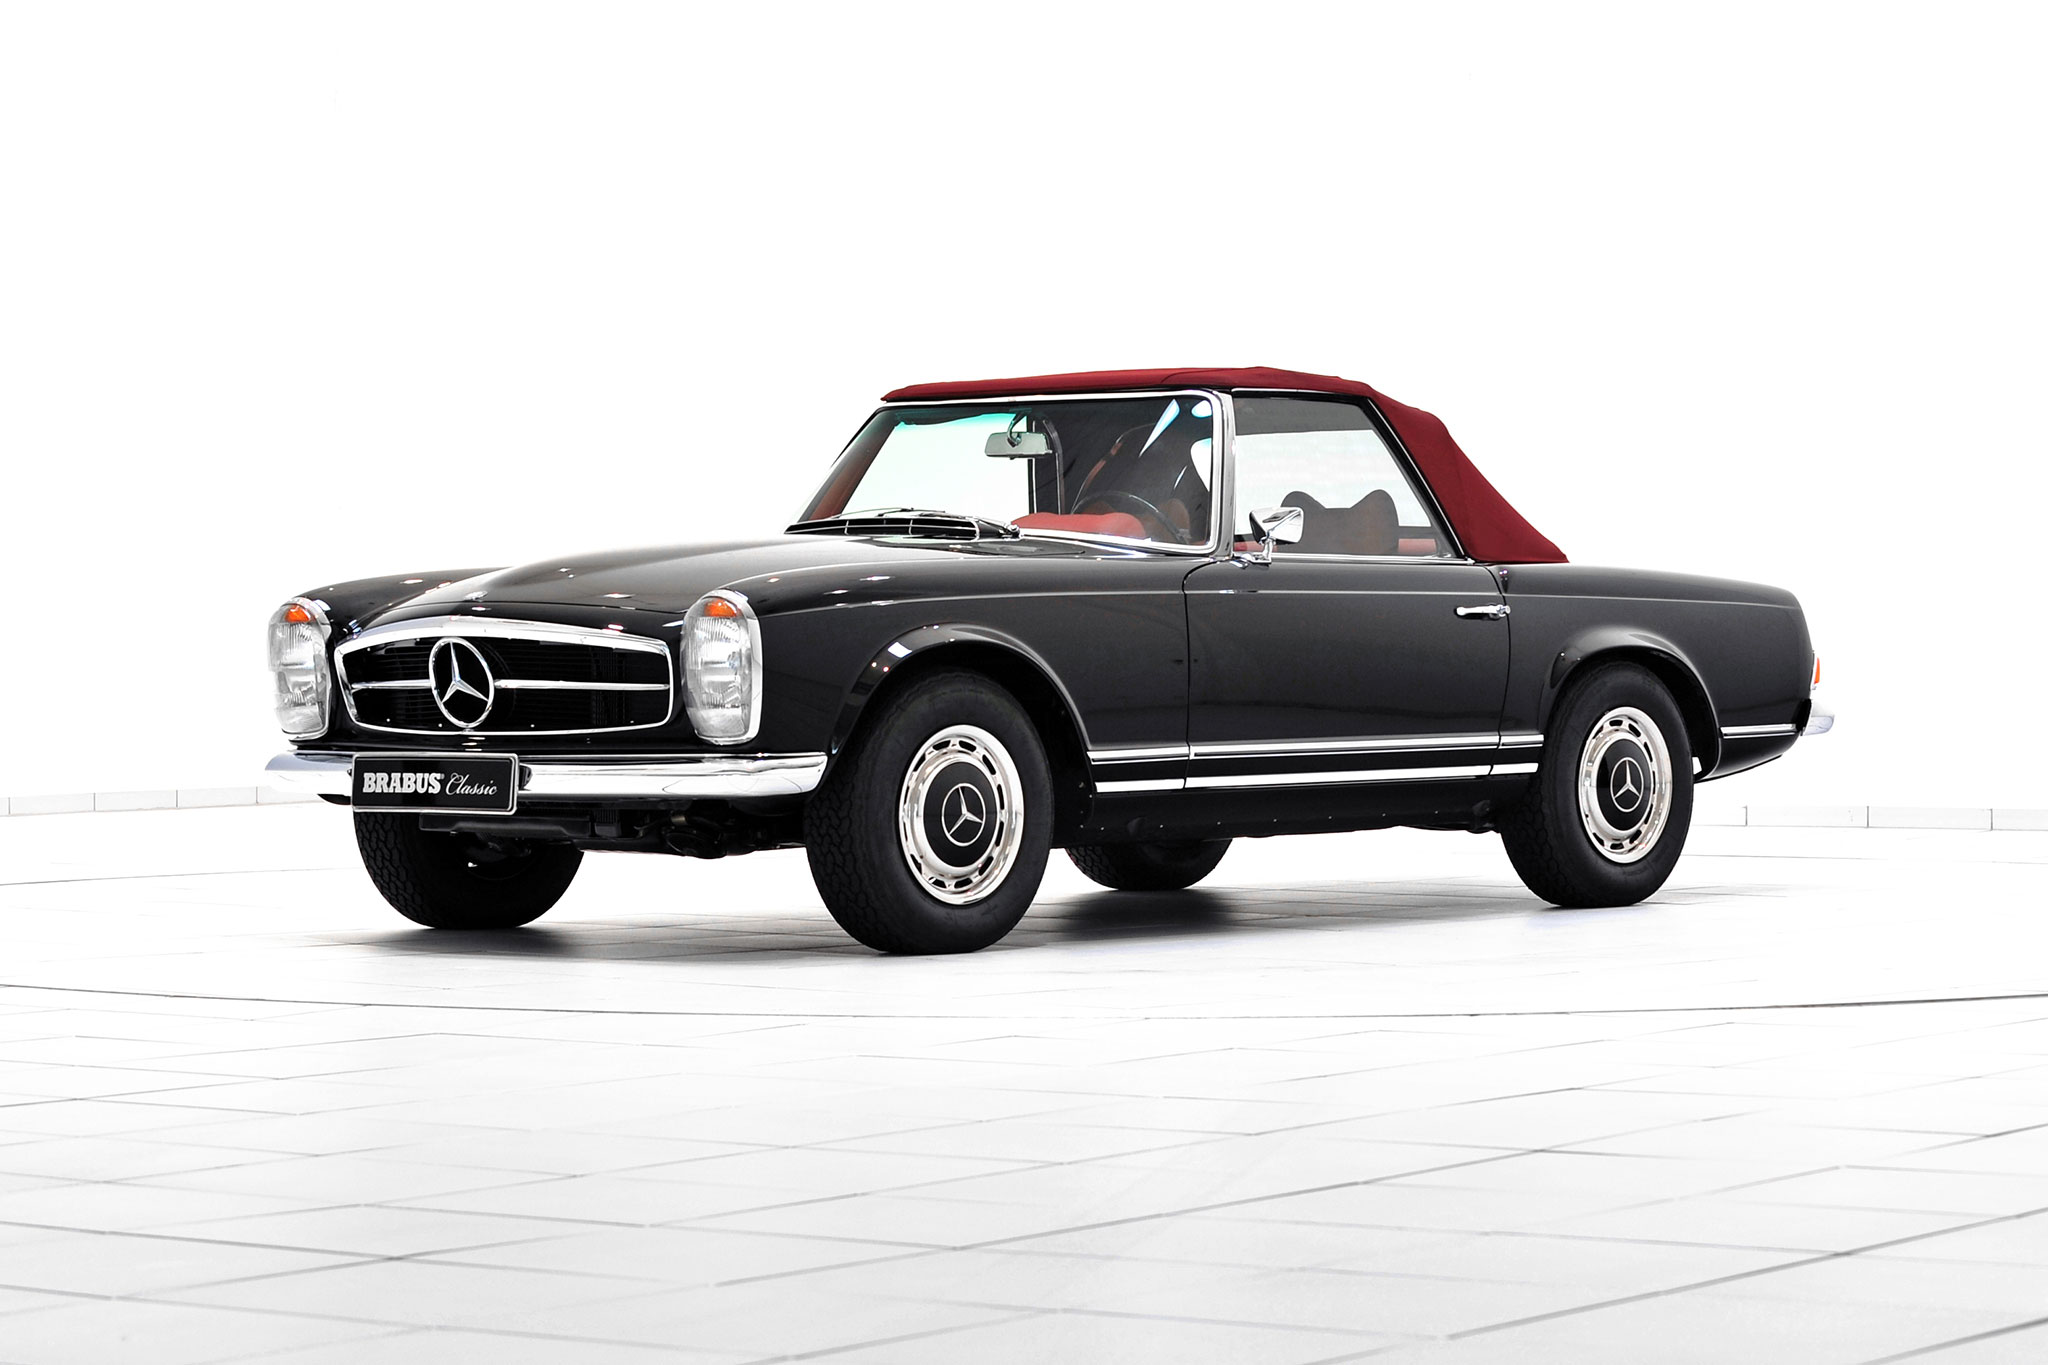 Brabus promotes classic services with restored mercedes for Mercedes benz 280sl